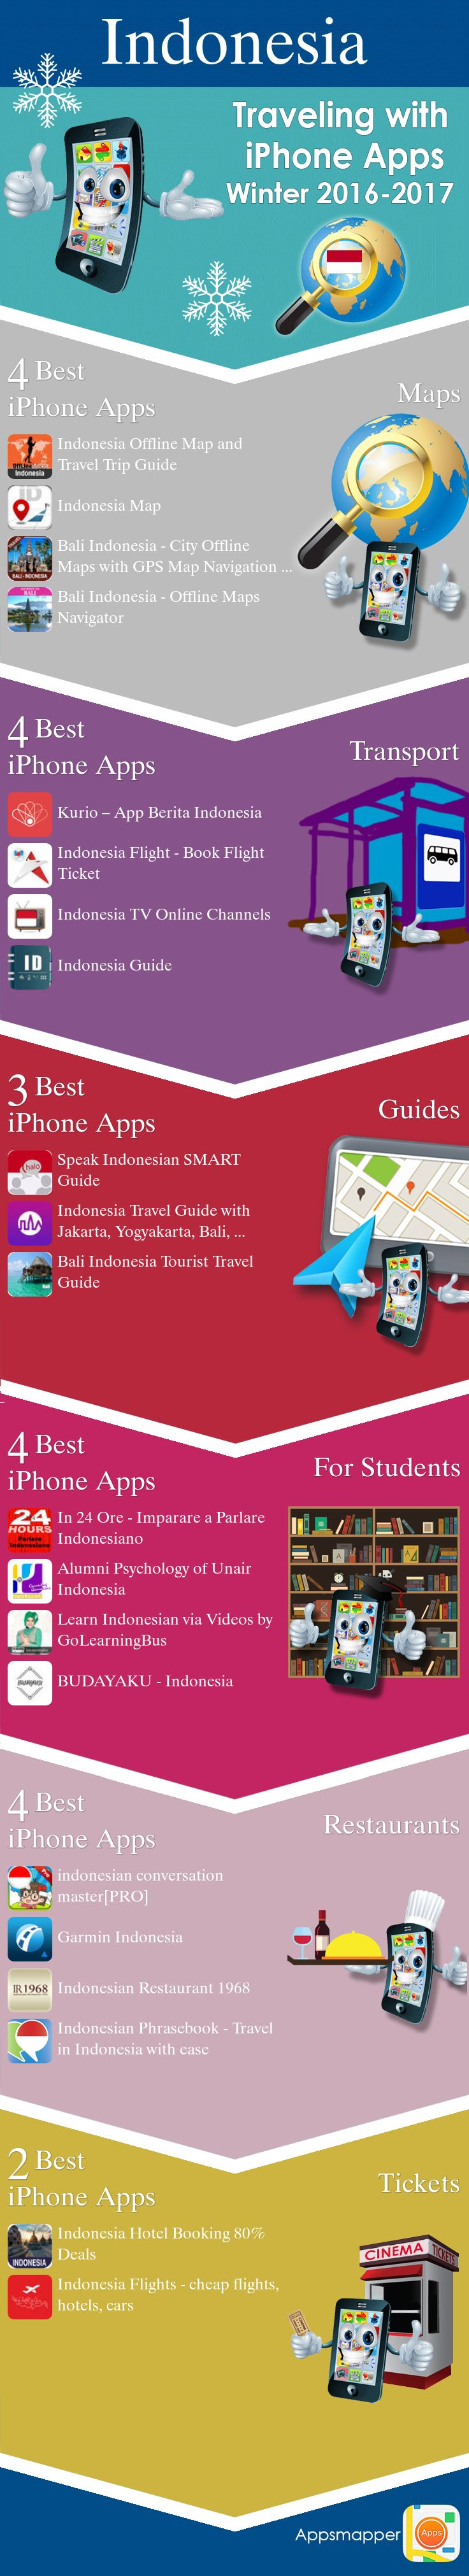 Indonesia iPhone apps: Travel Guides, Maps, Transportation, Biking, Museums, Parking, Sport and apps for Students.